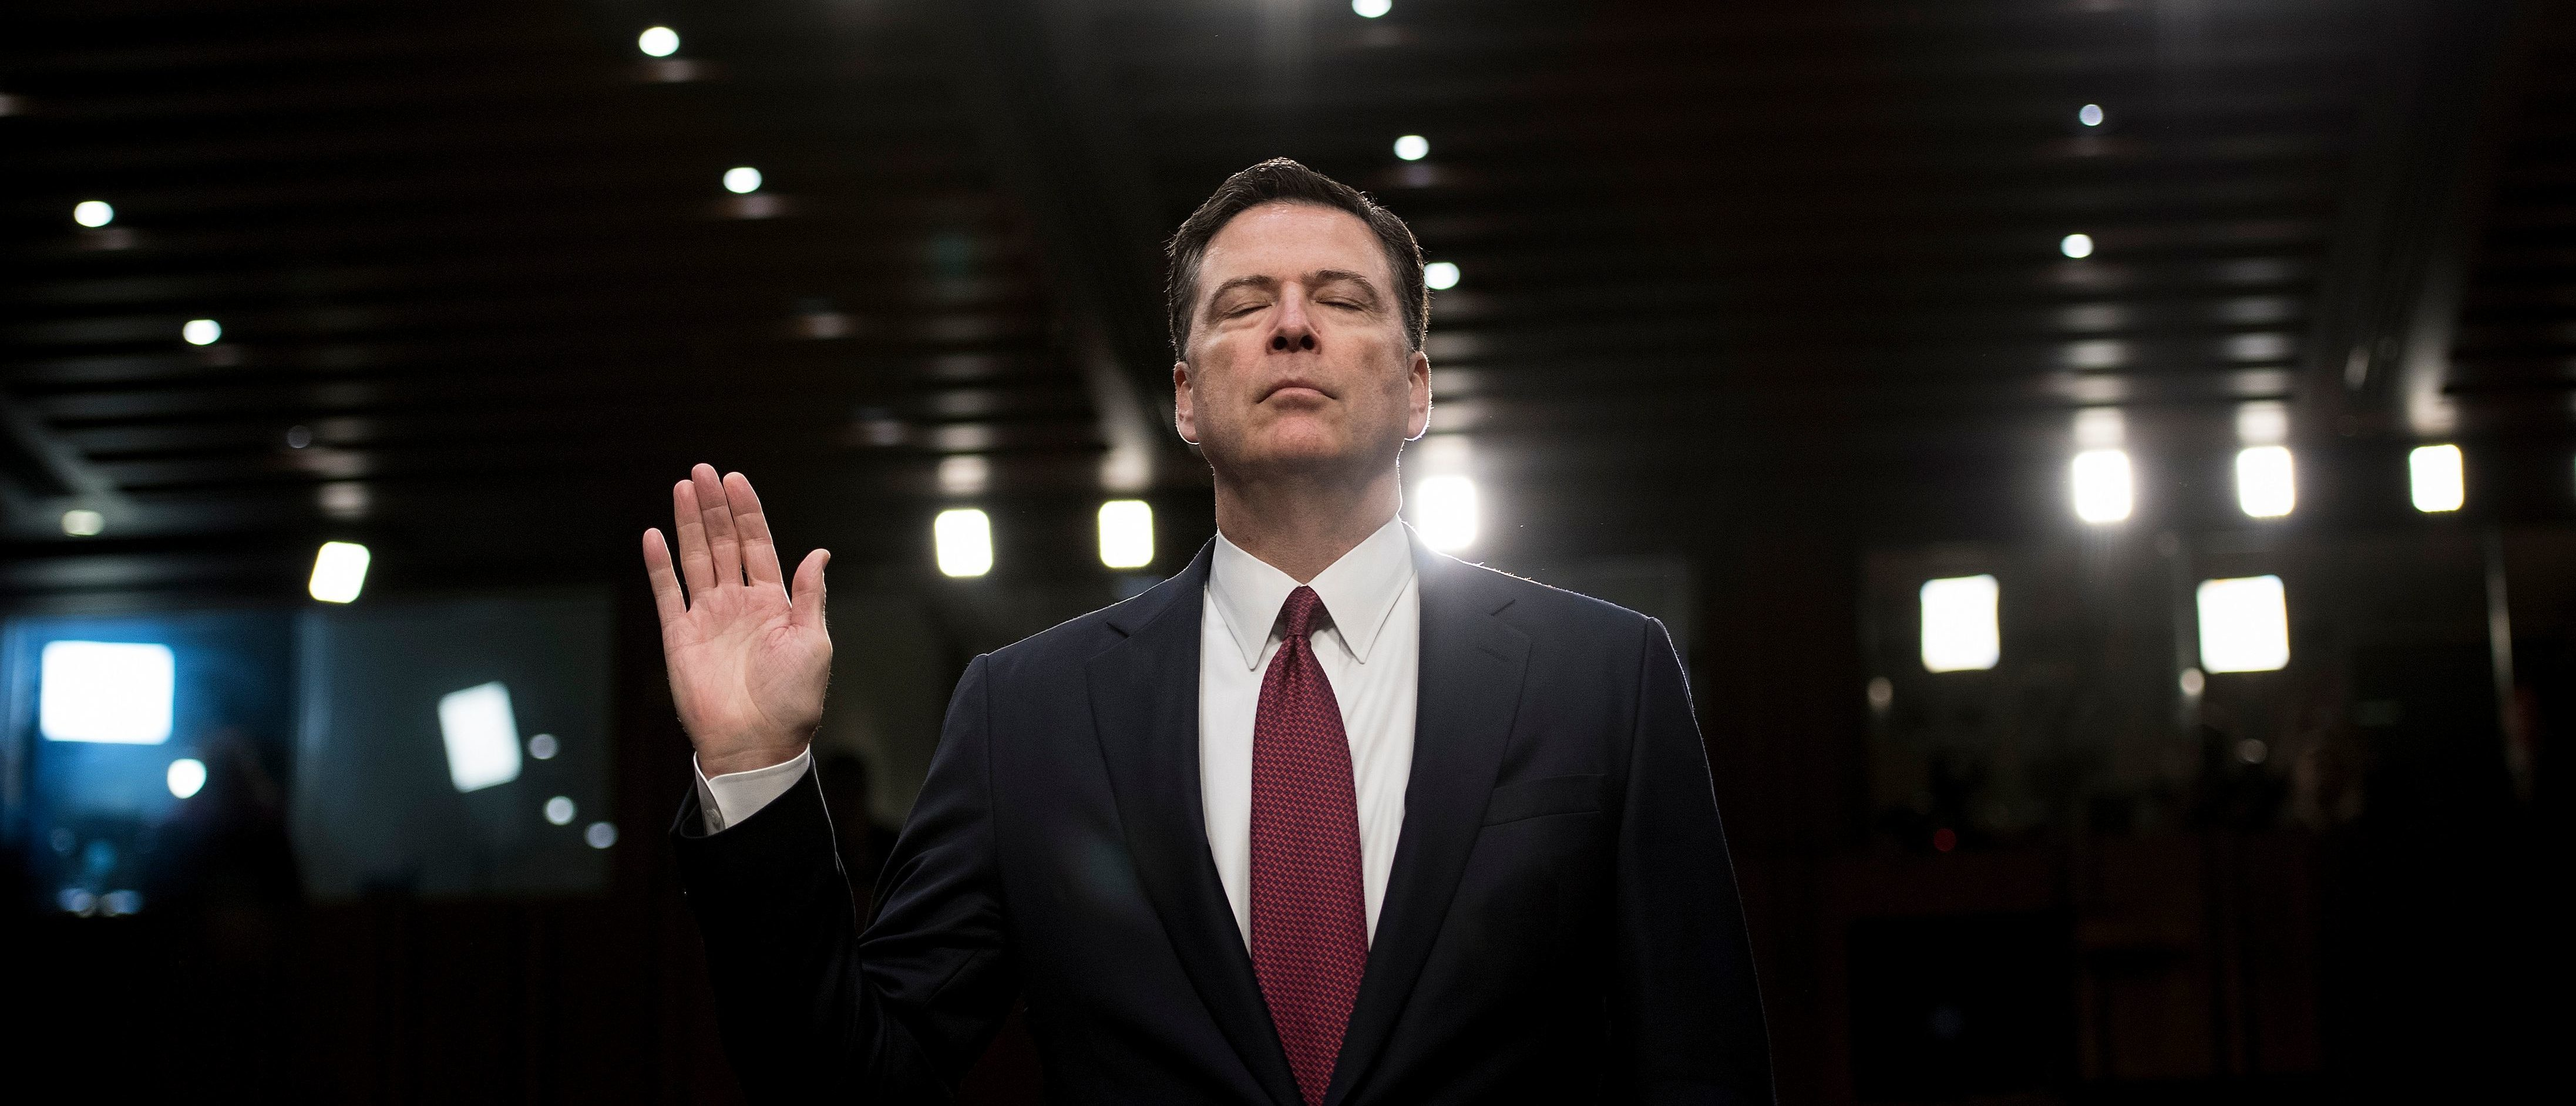 Ousted FBI director James Comey is sworn in during a hearing before the Senate Select Committee on Intelligence on Capitol Hill June 8, 2017 in Washington, DC.